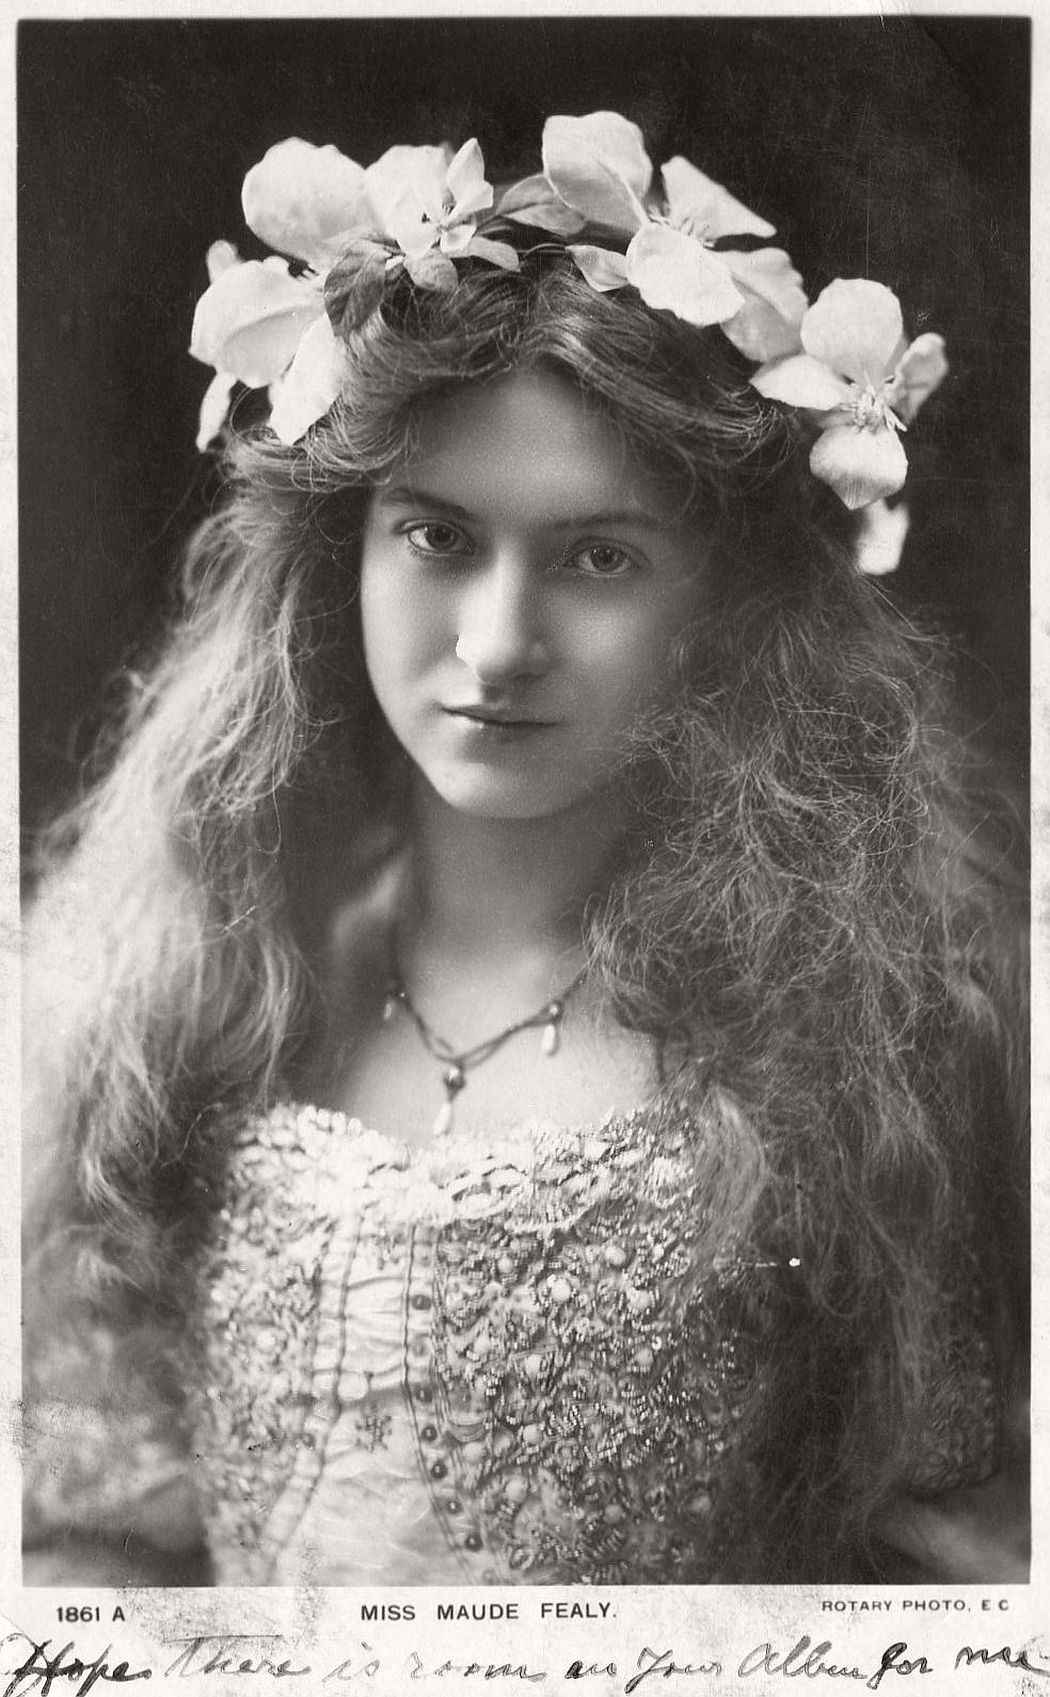 vintage-postcard-of-actress-miss-maude-fealy-1900s-early-xx-century-27